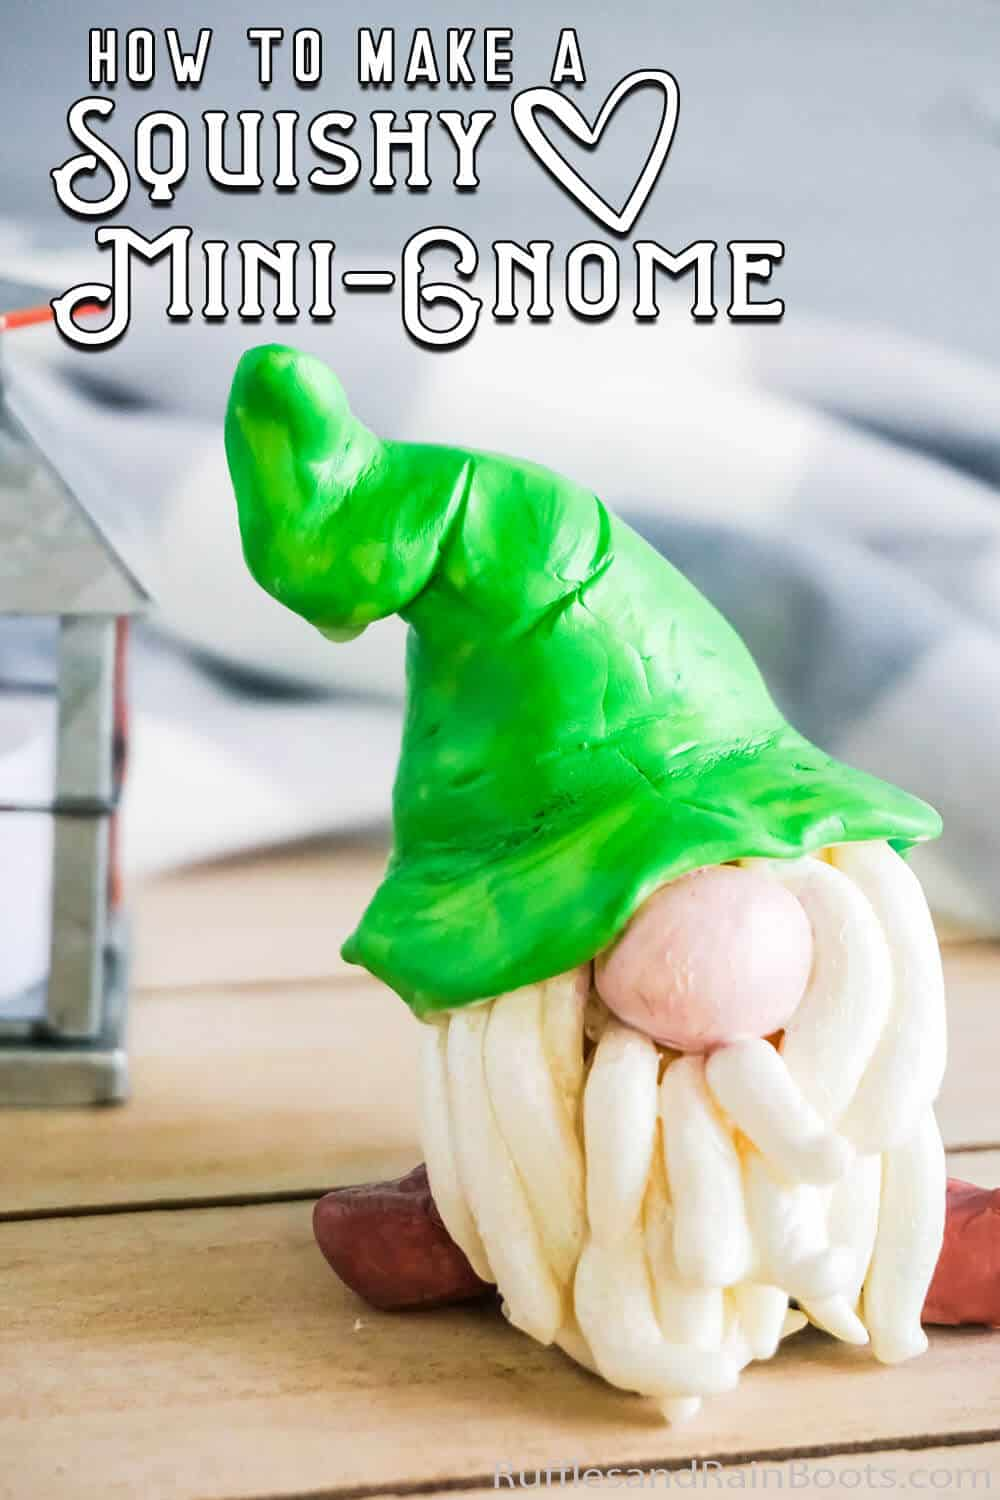 closeup of easy diy mini gnome with text which reads how to make a squishy mini-gnome